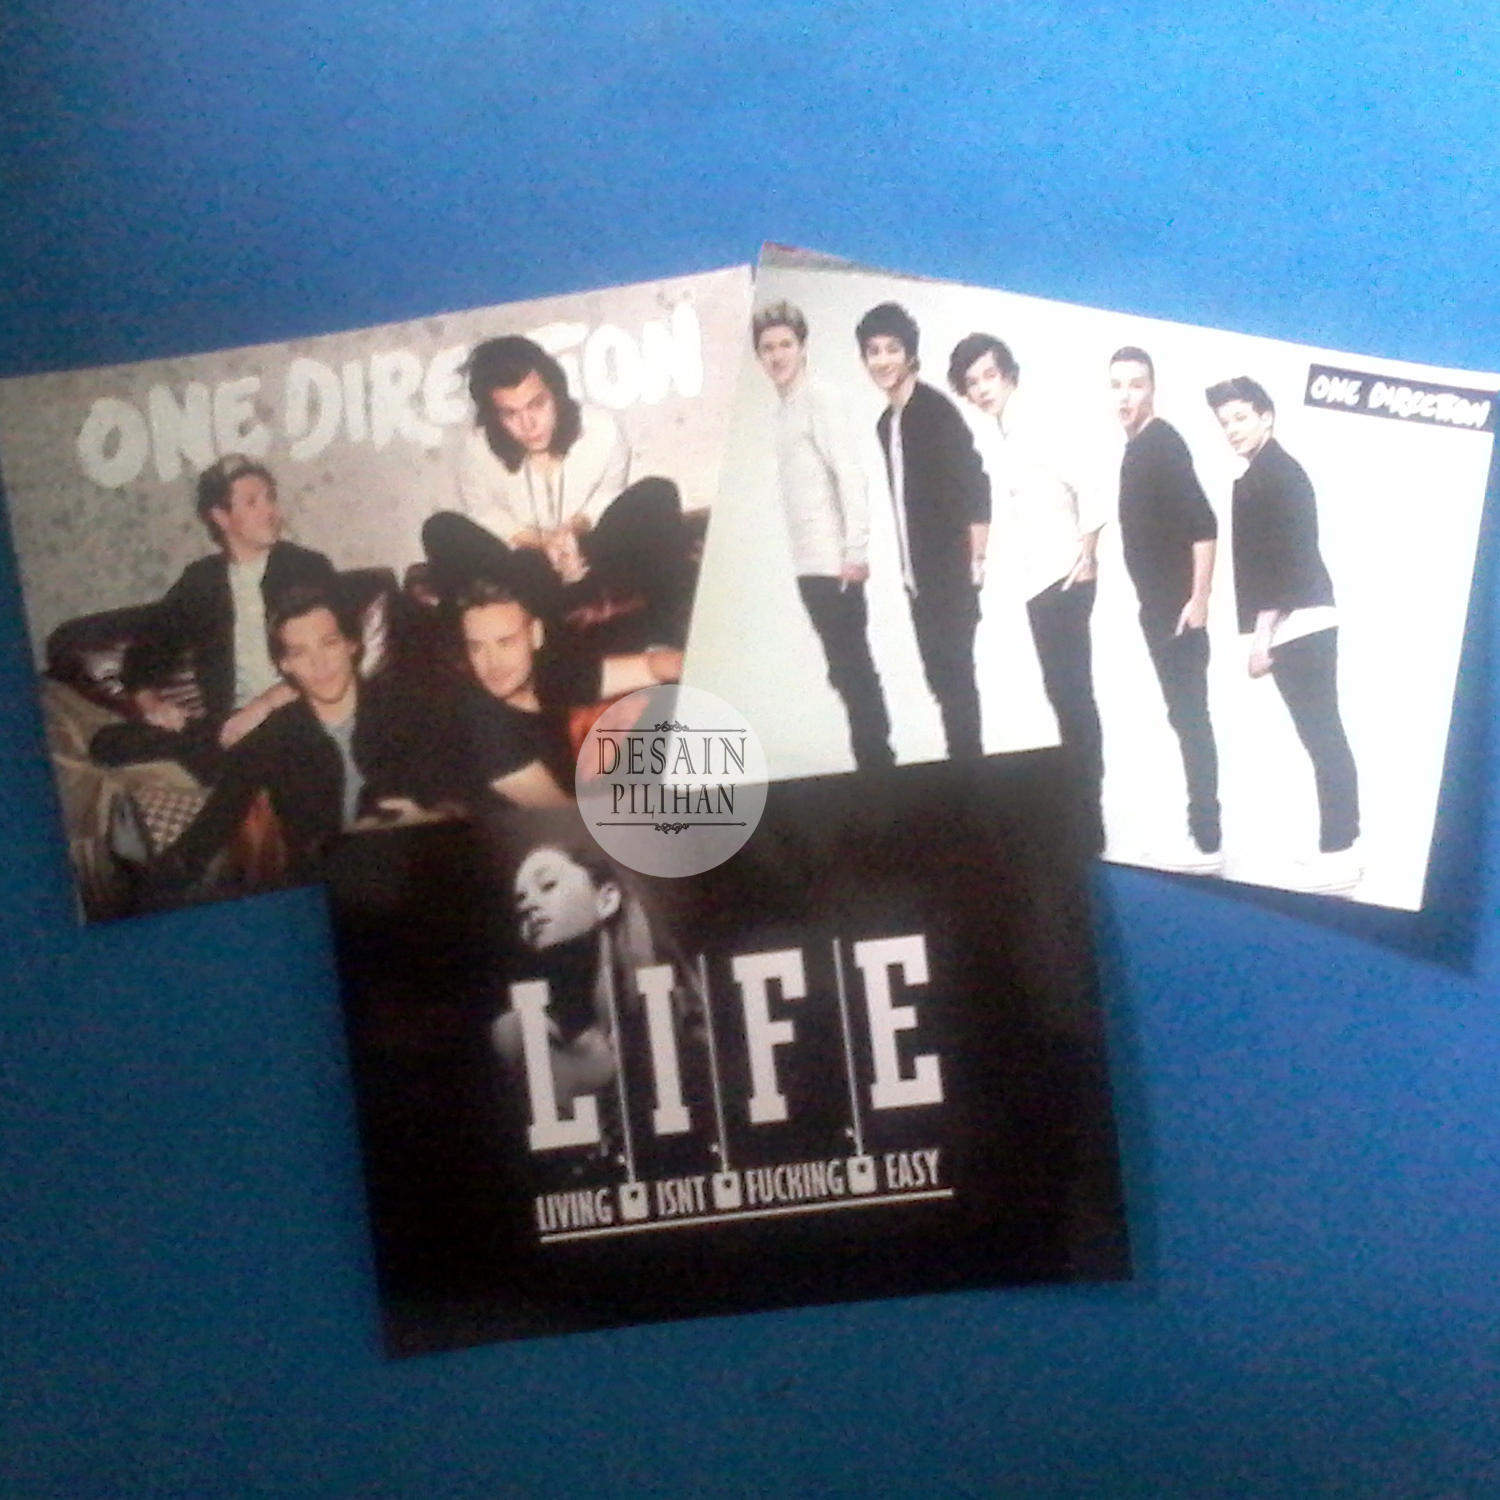 POSTER CUSTOM, POSTER ONE DIRECTION, POSTER LIFE